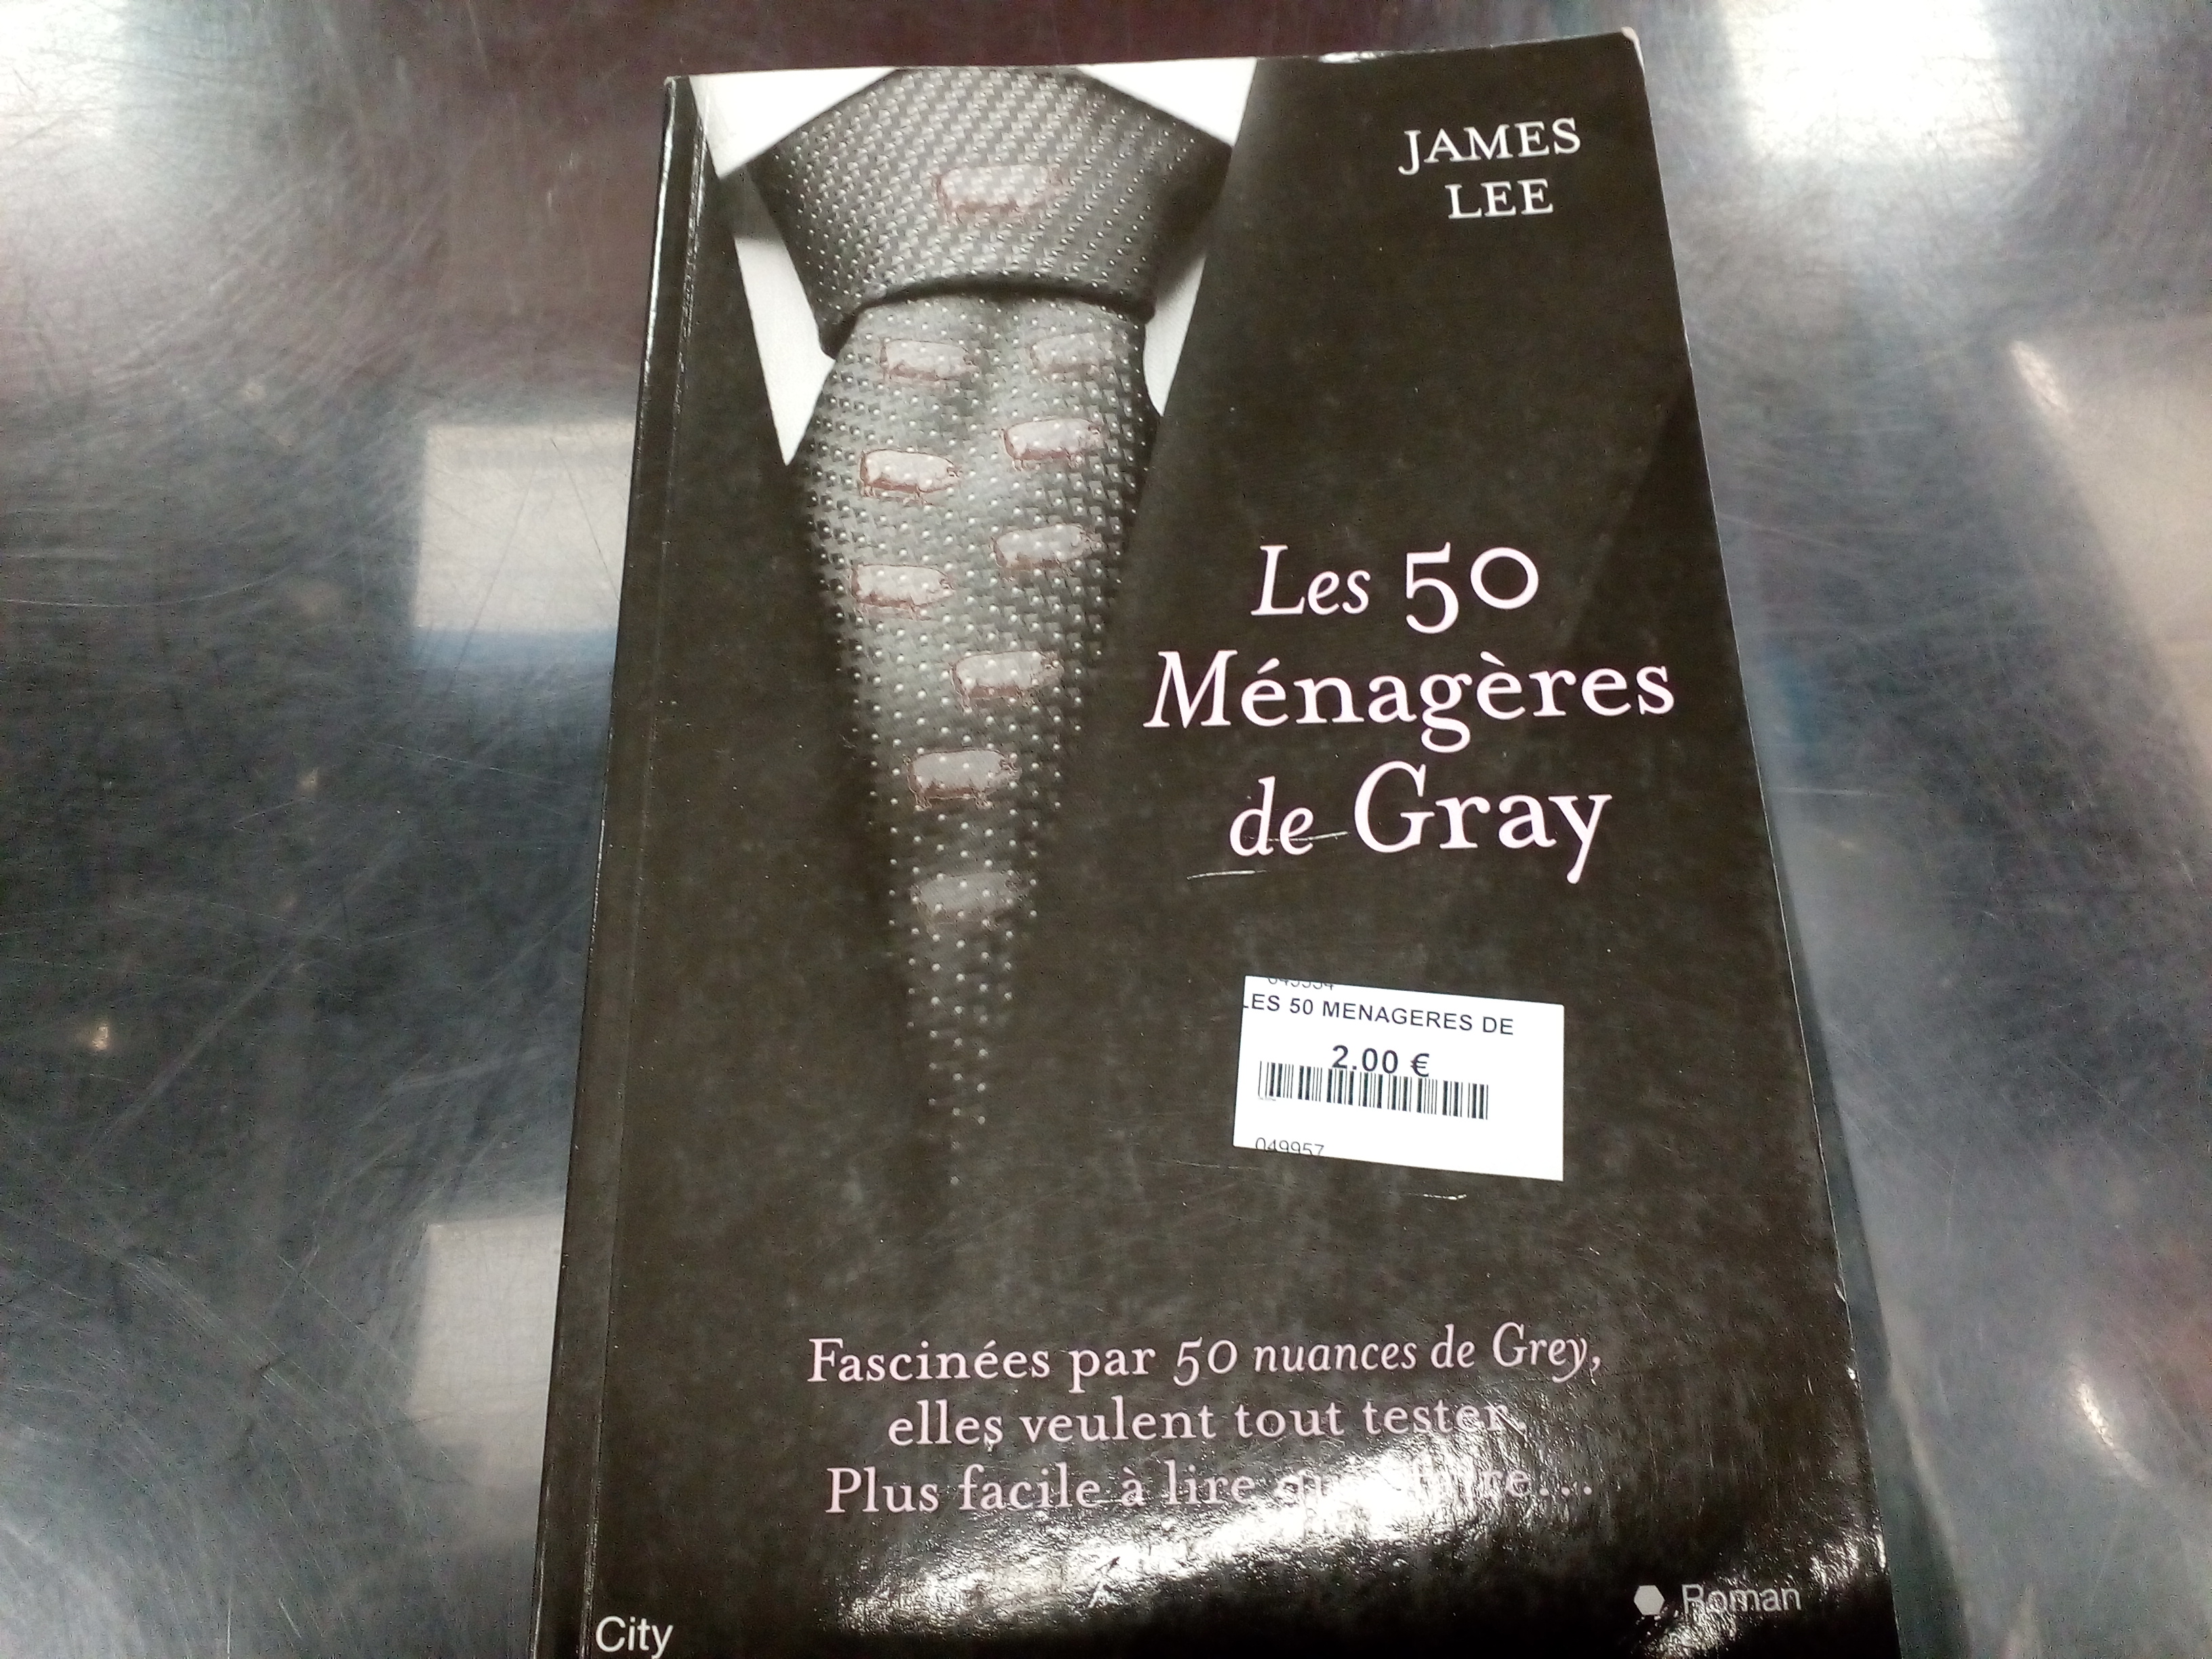 LES 50 MENAGERES DE GRAY